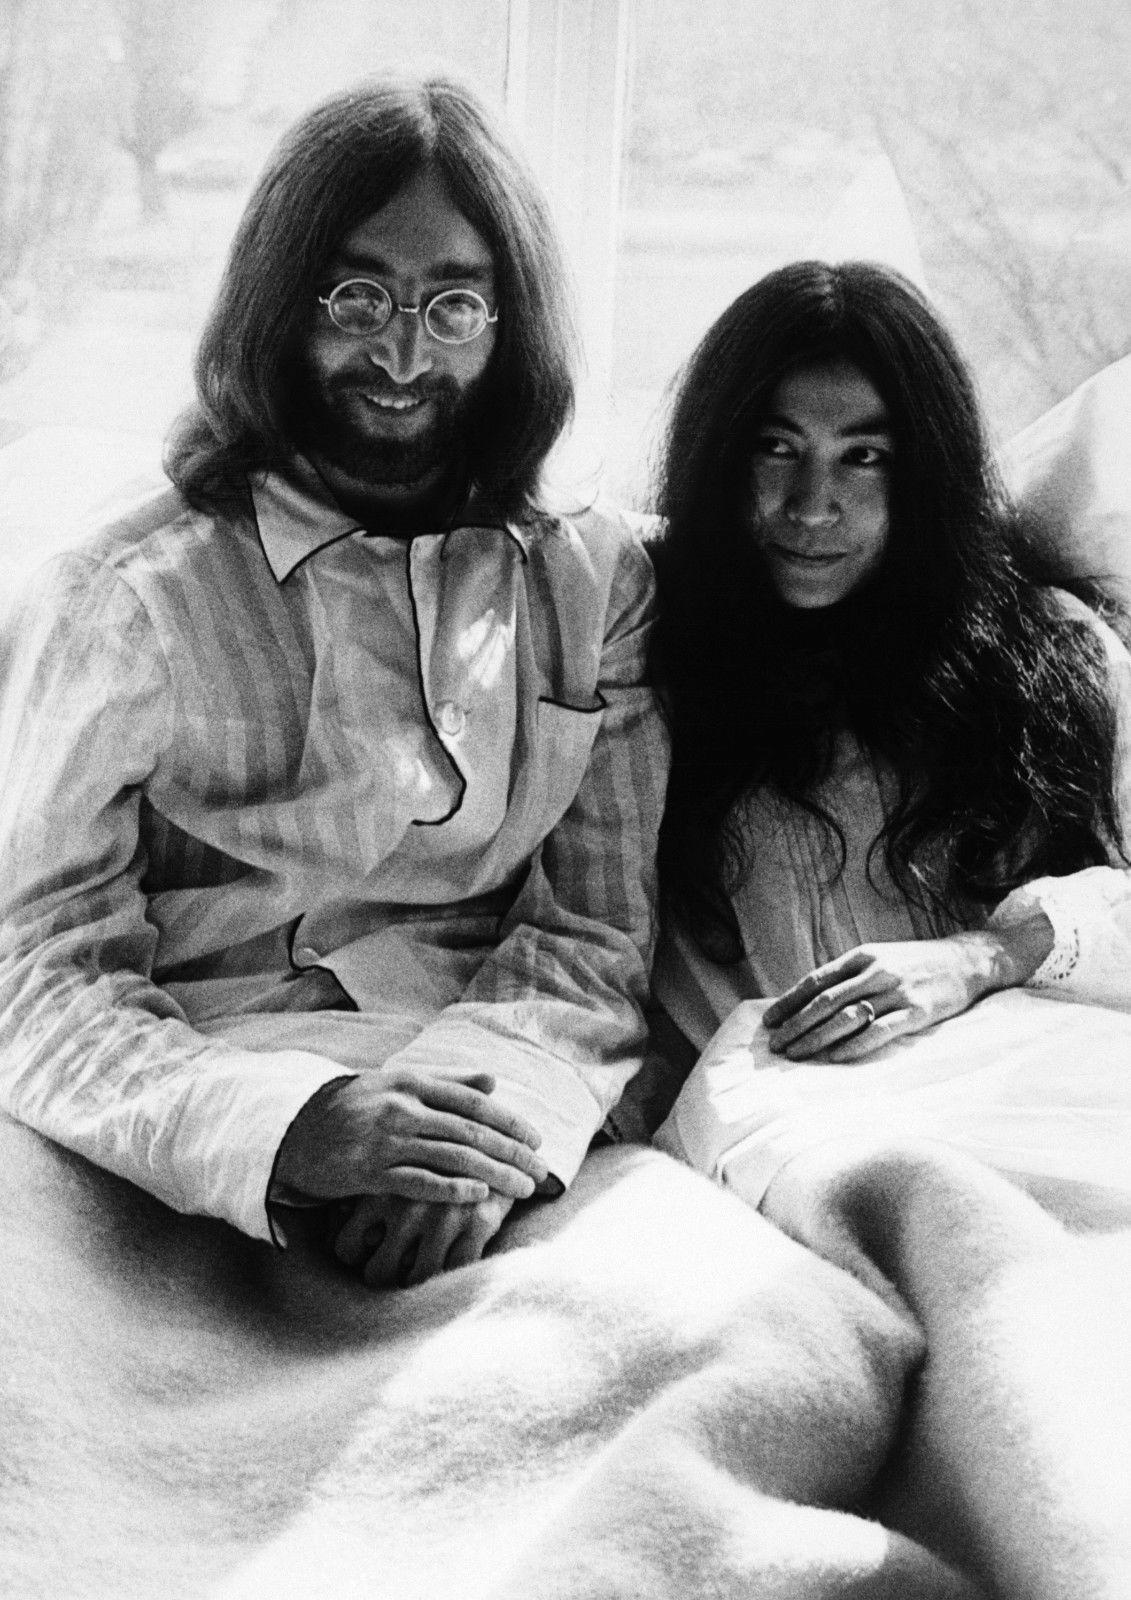 2020 John Lennon And Yoko Ono In Bed Art Silk Print Poster 24x36inch60x90cm 018 From Chuy8988 10 93 Dhgate Com